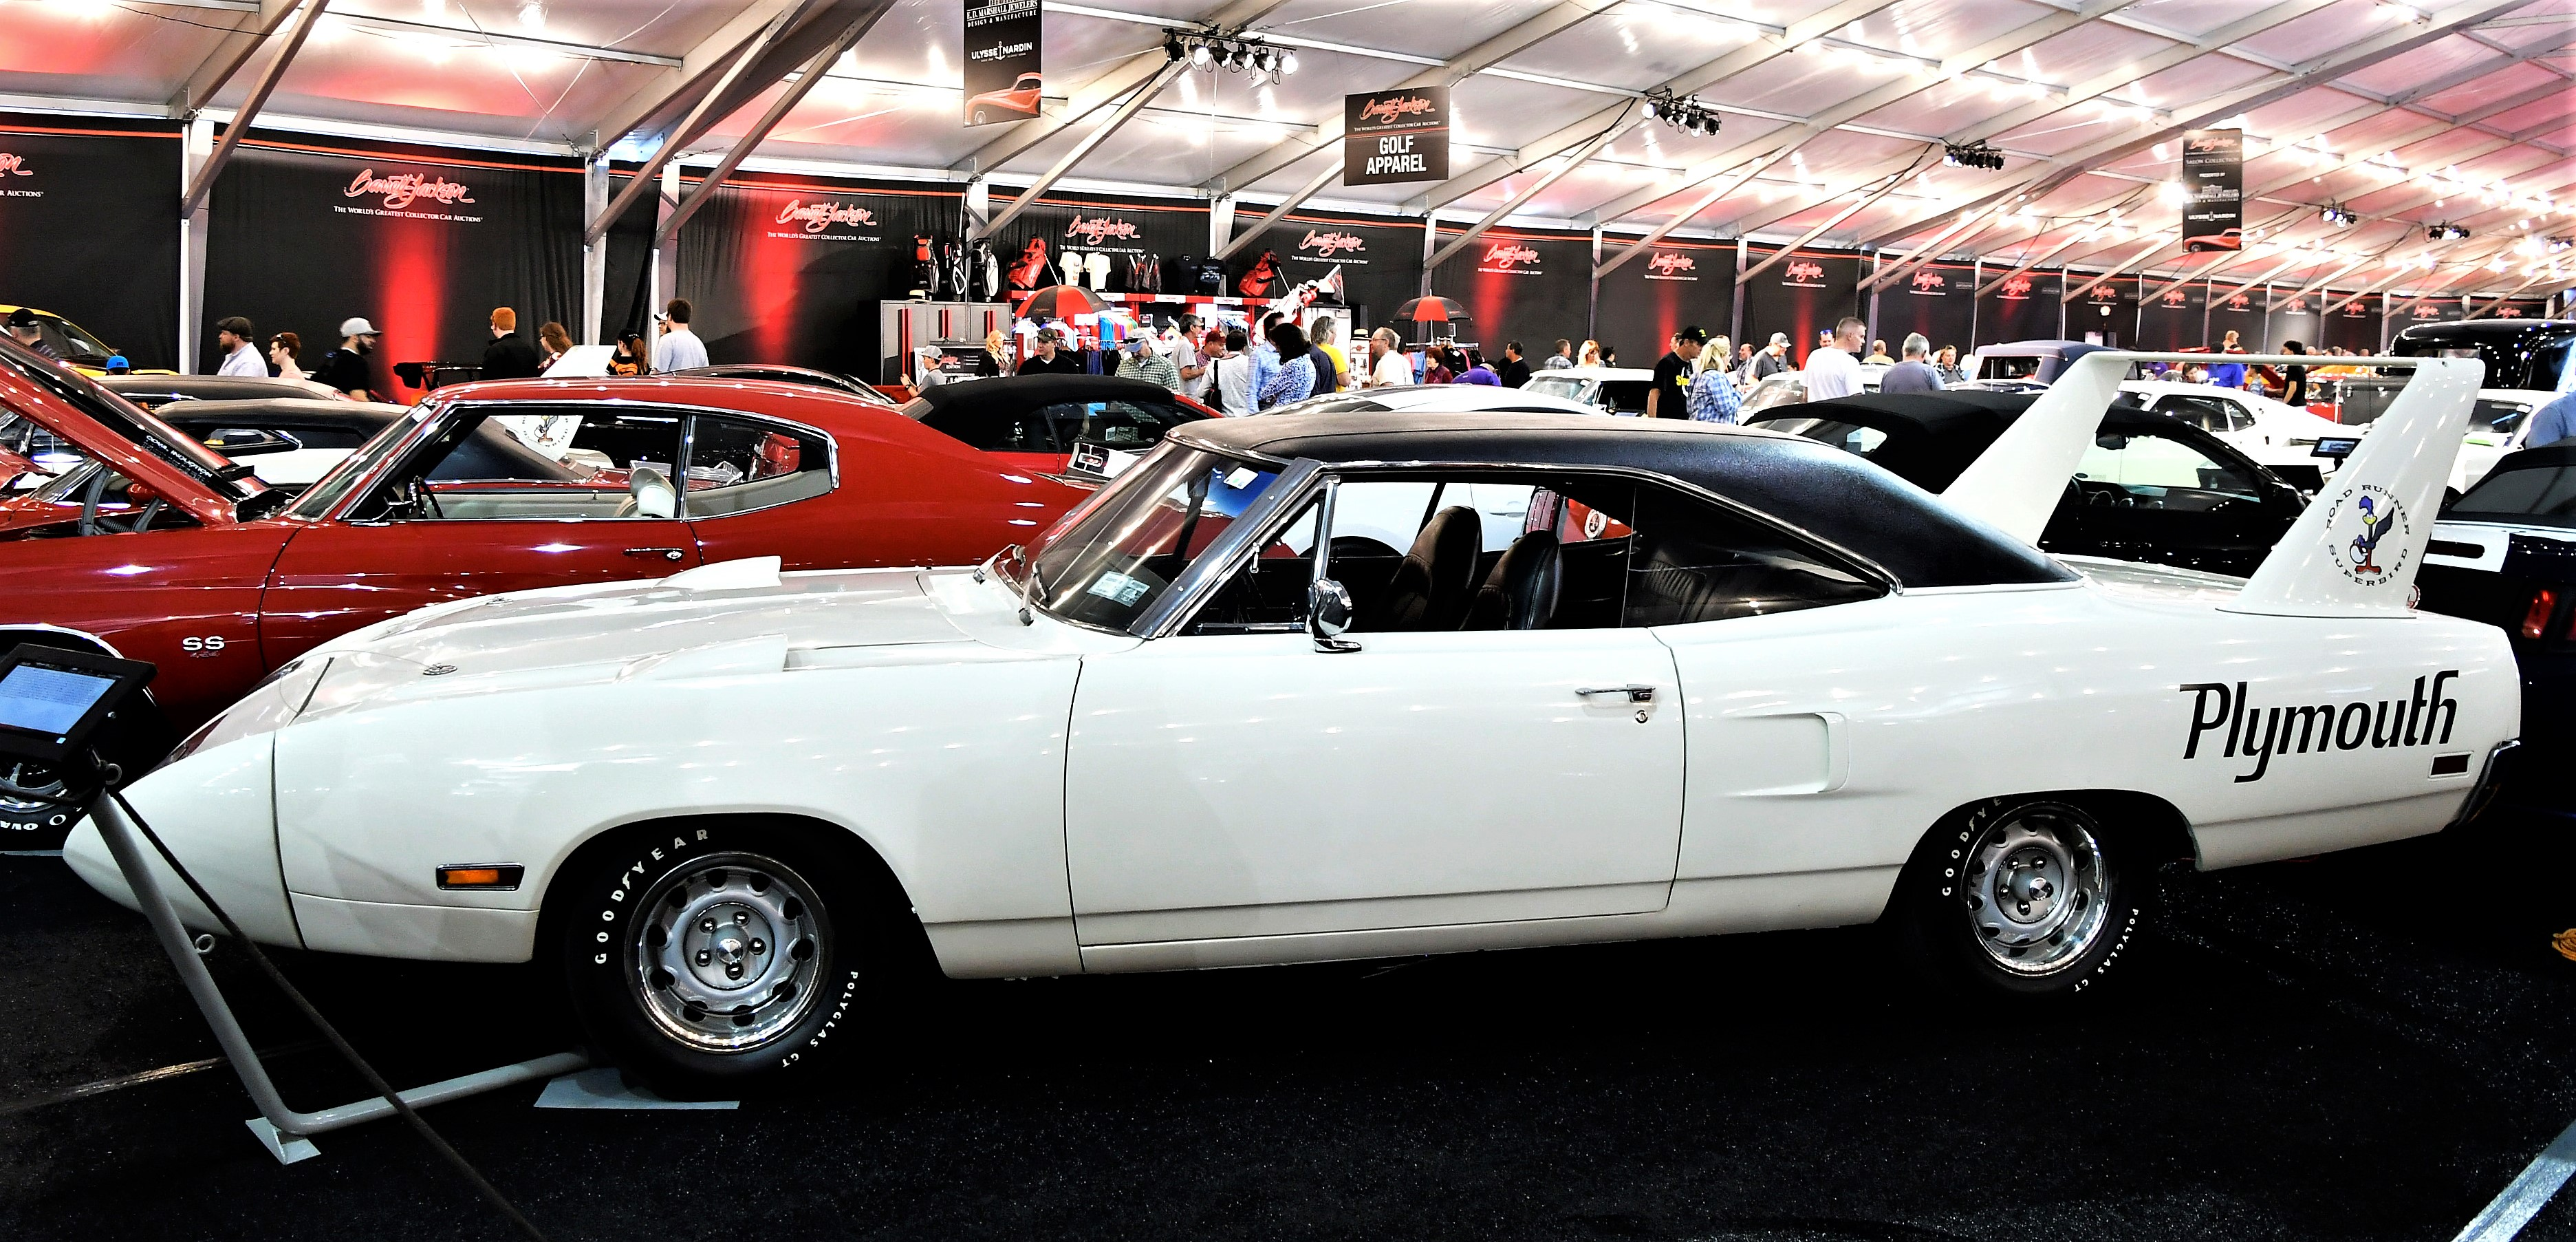 Top-dog muscle cars ready for action at Barrett-Jackson in ...